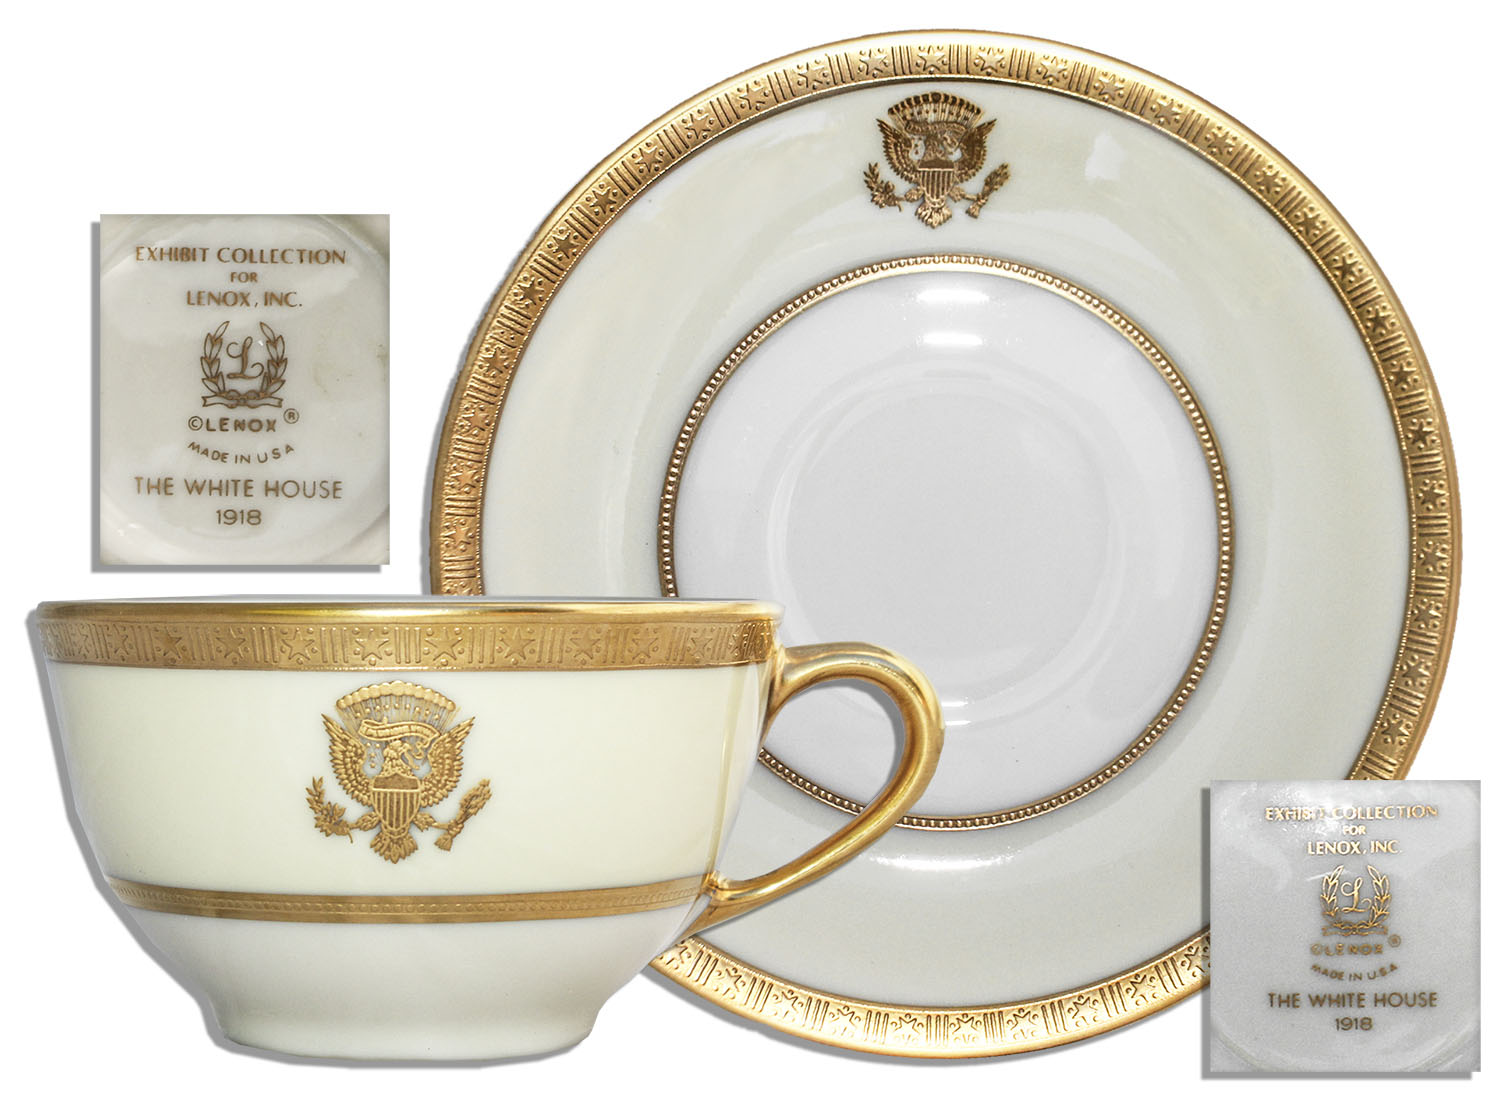 woodrow wilson WHITE HOUSE CHINA cup and suacer